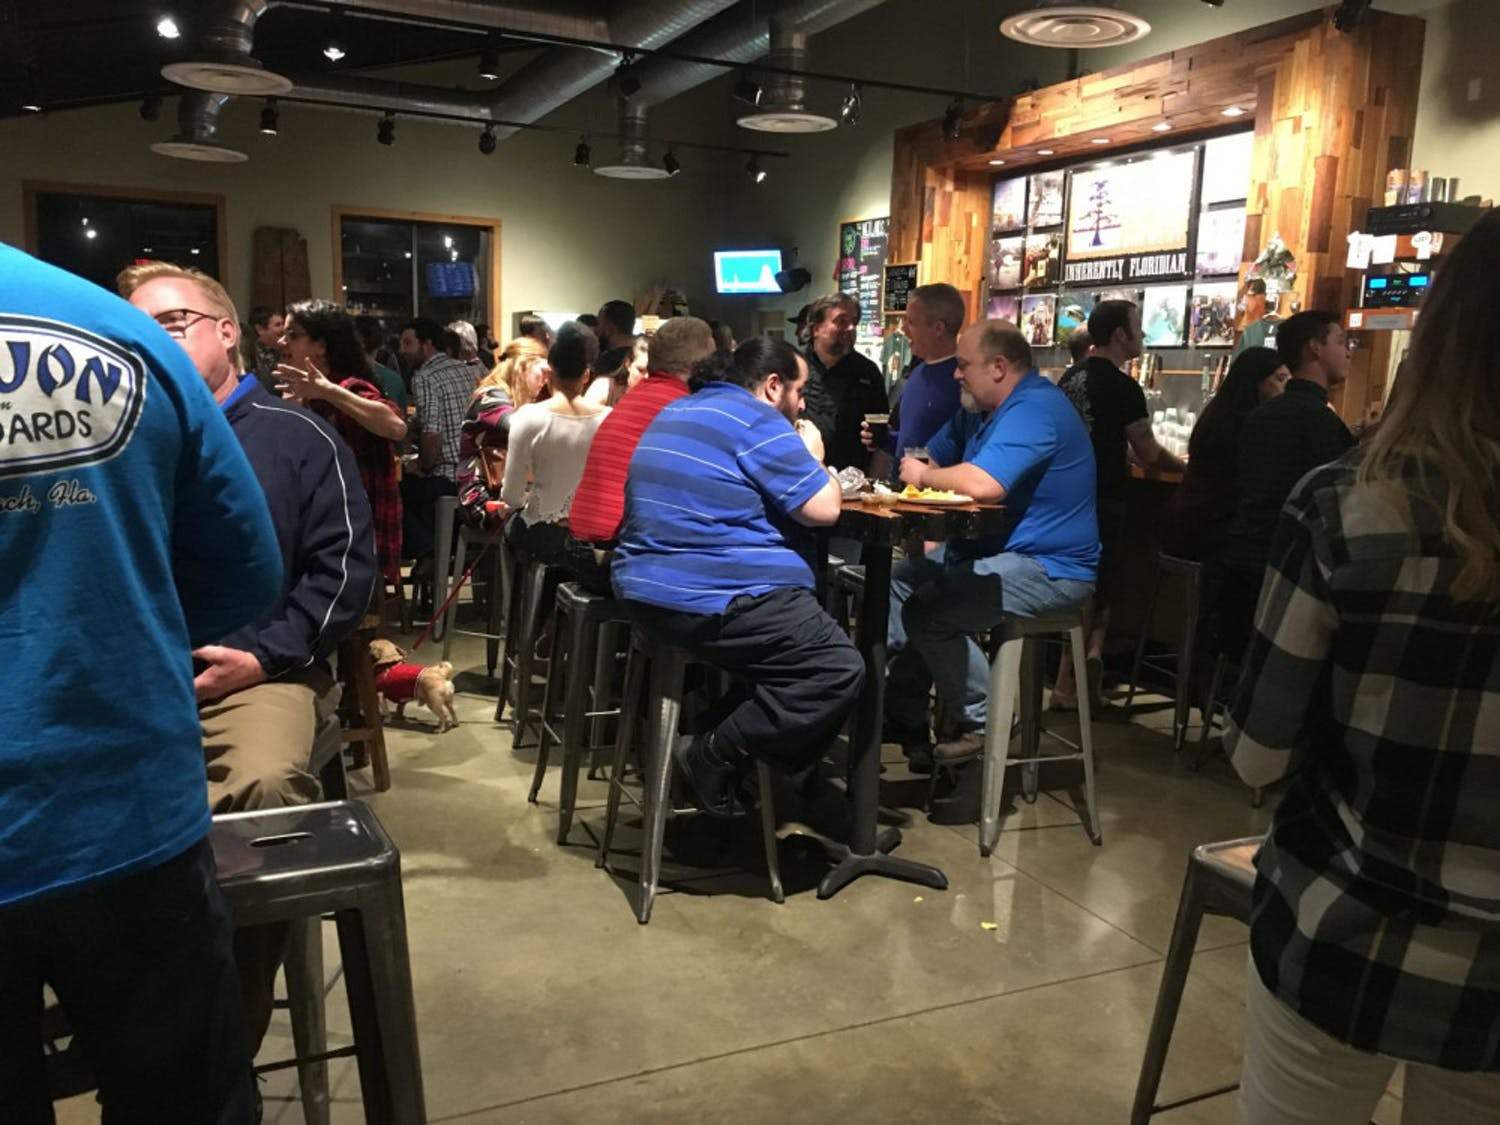 Inside Swamp Head Brewery, people enjoyed local beer with their burrito. There were also T-shirts and raffle tickets for sale.